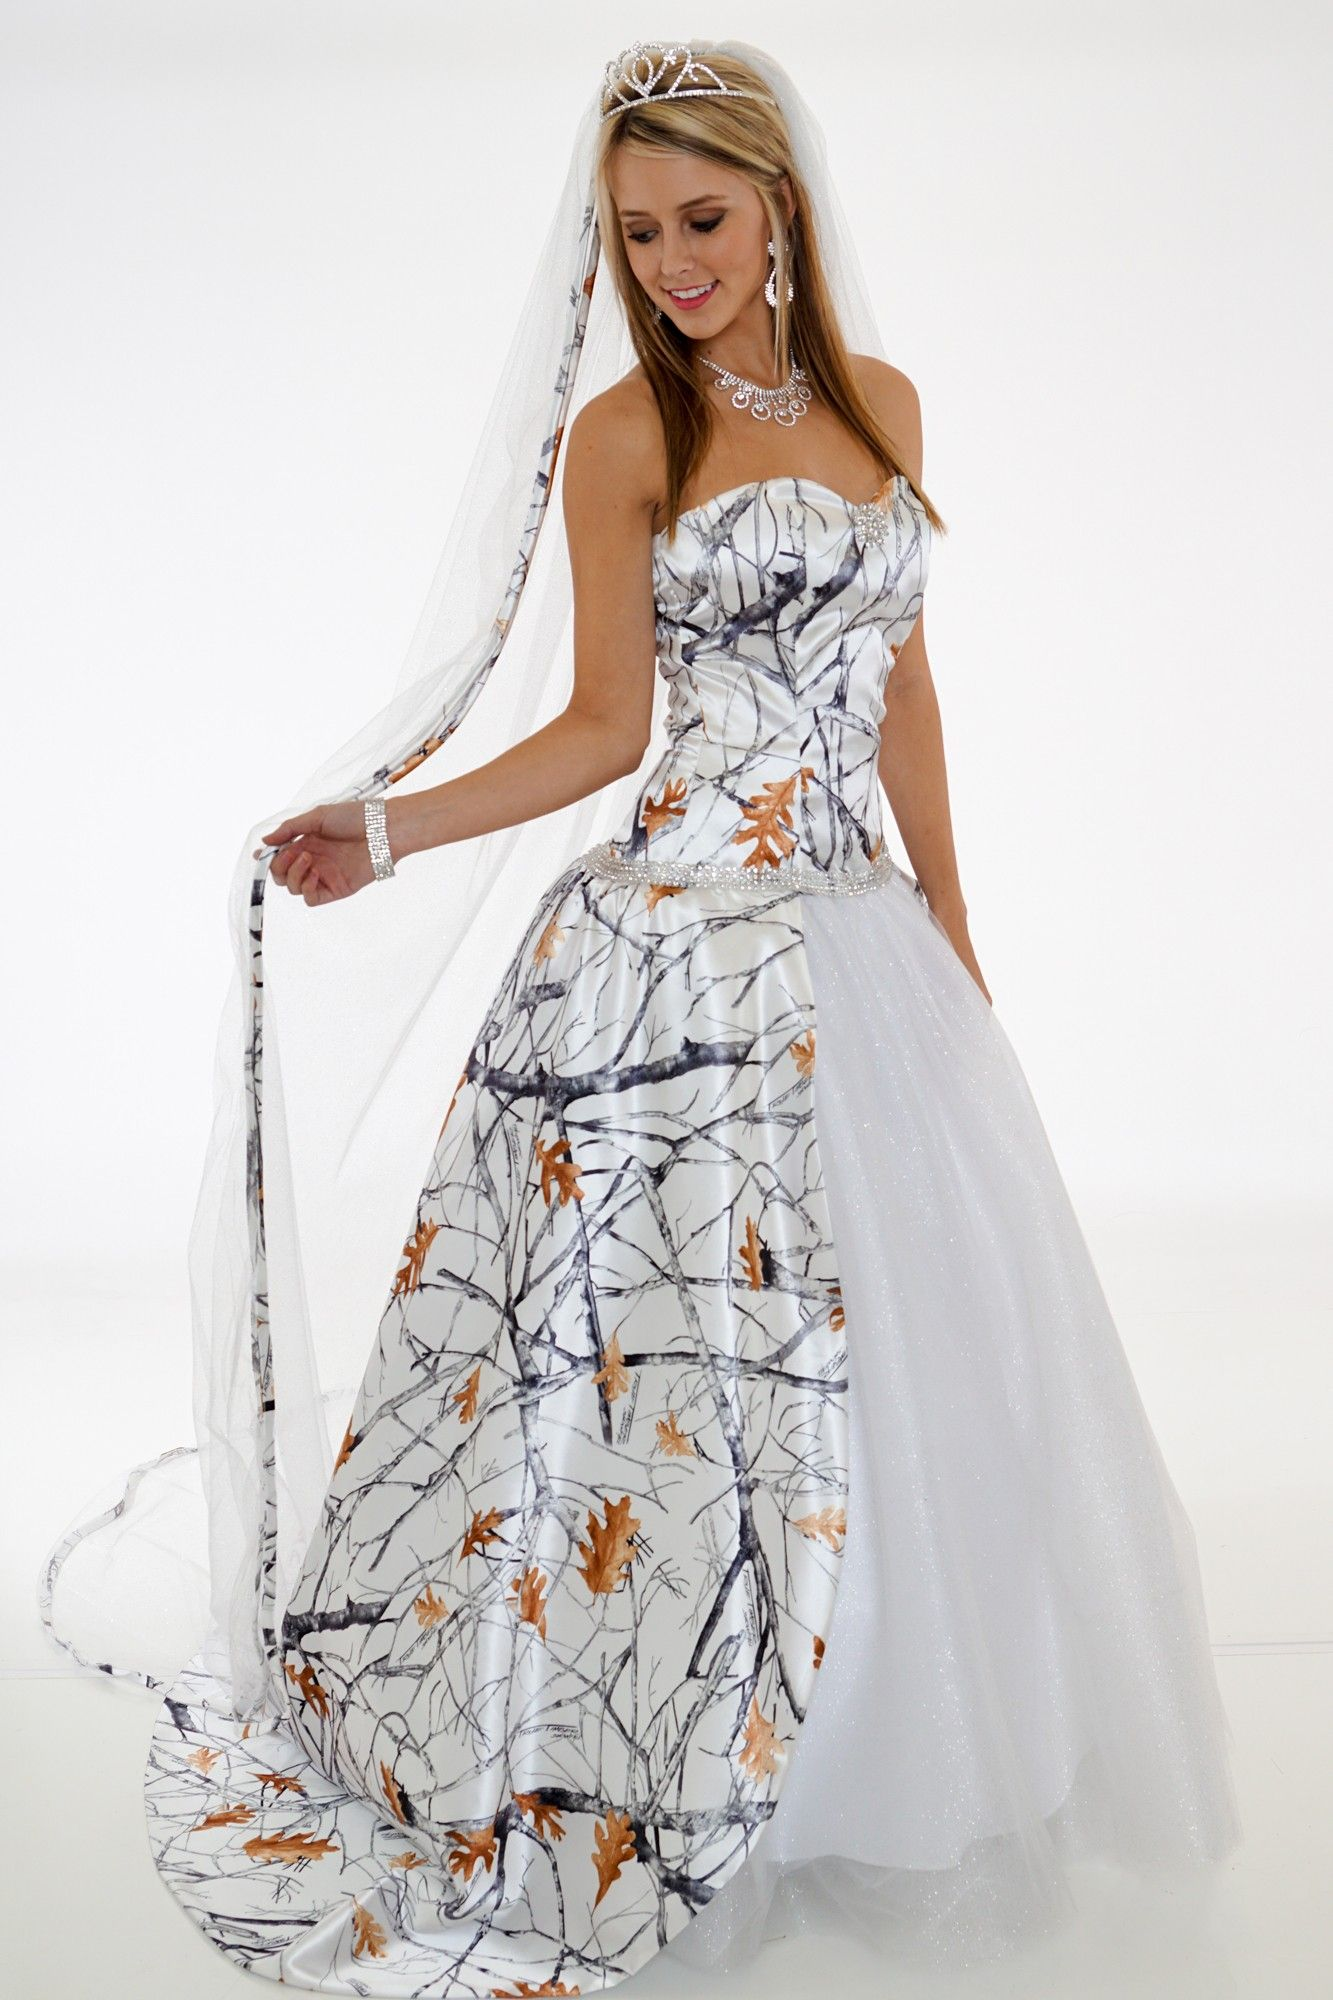 How To Look Feminine In Camo Wedding Dresses The Best Wedding